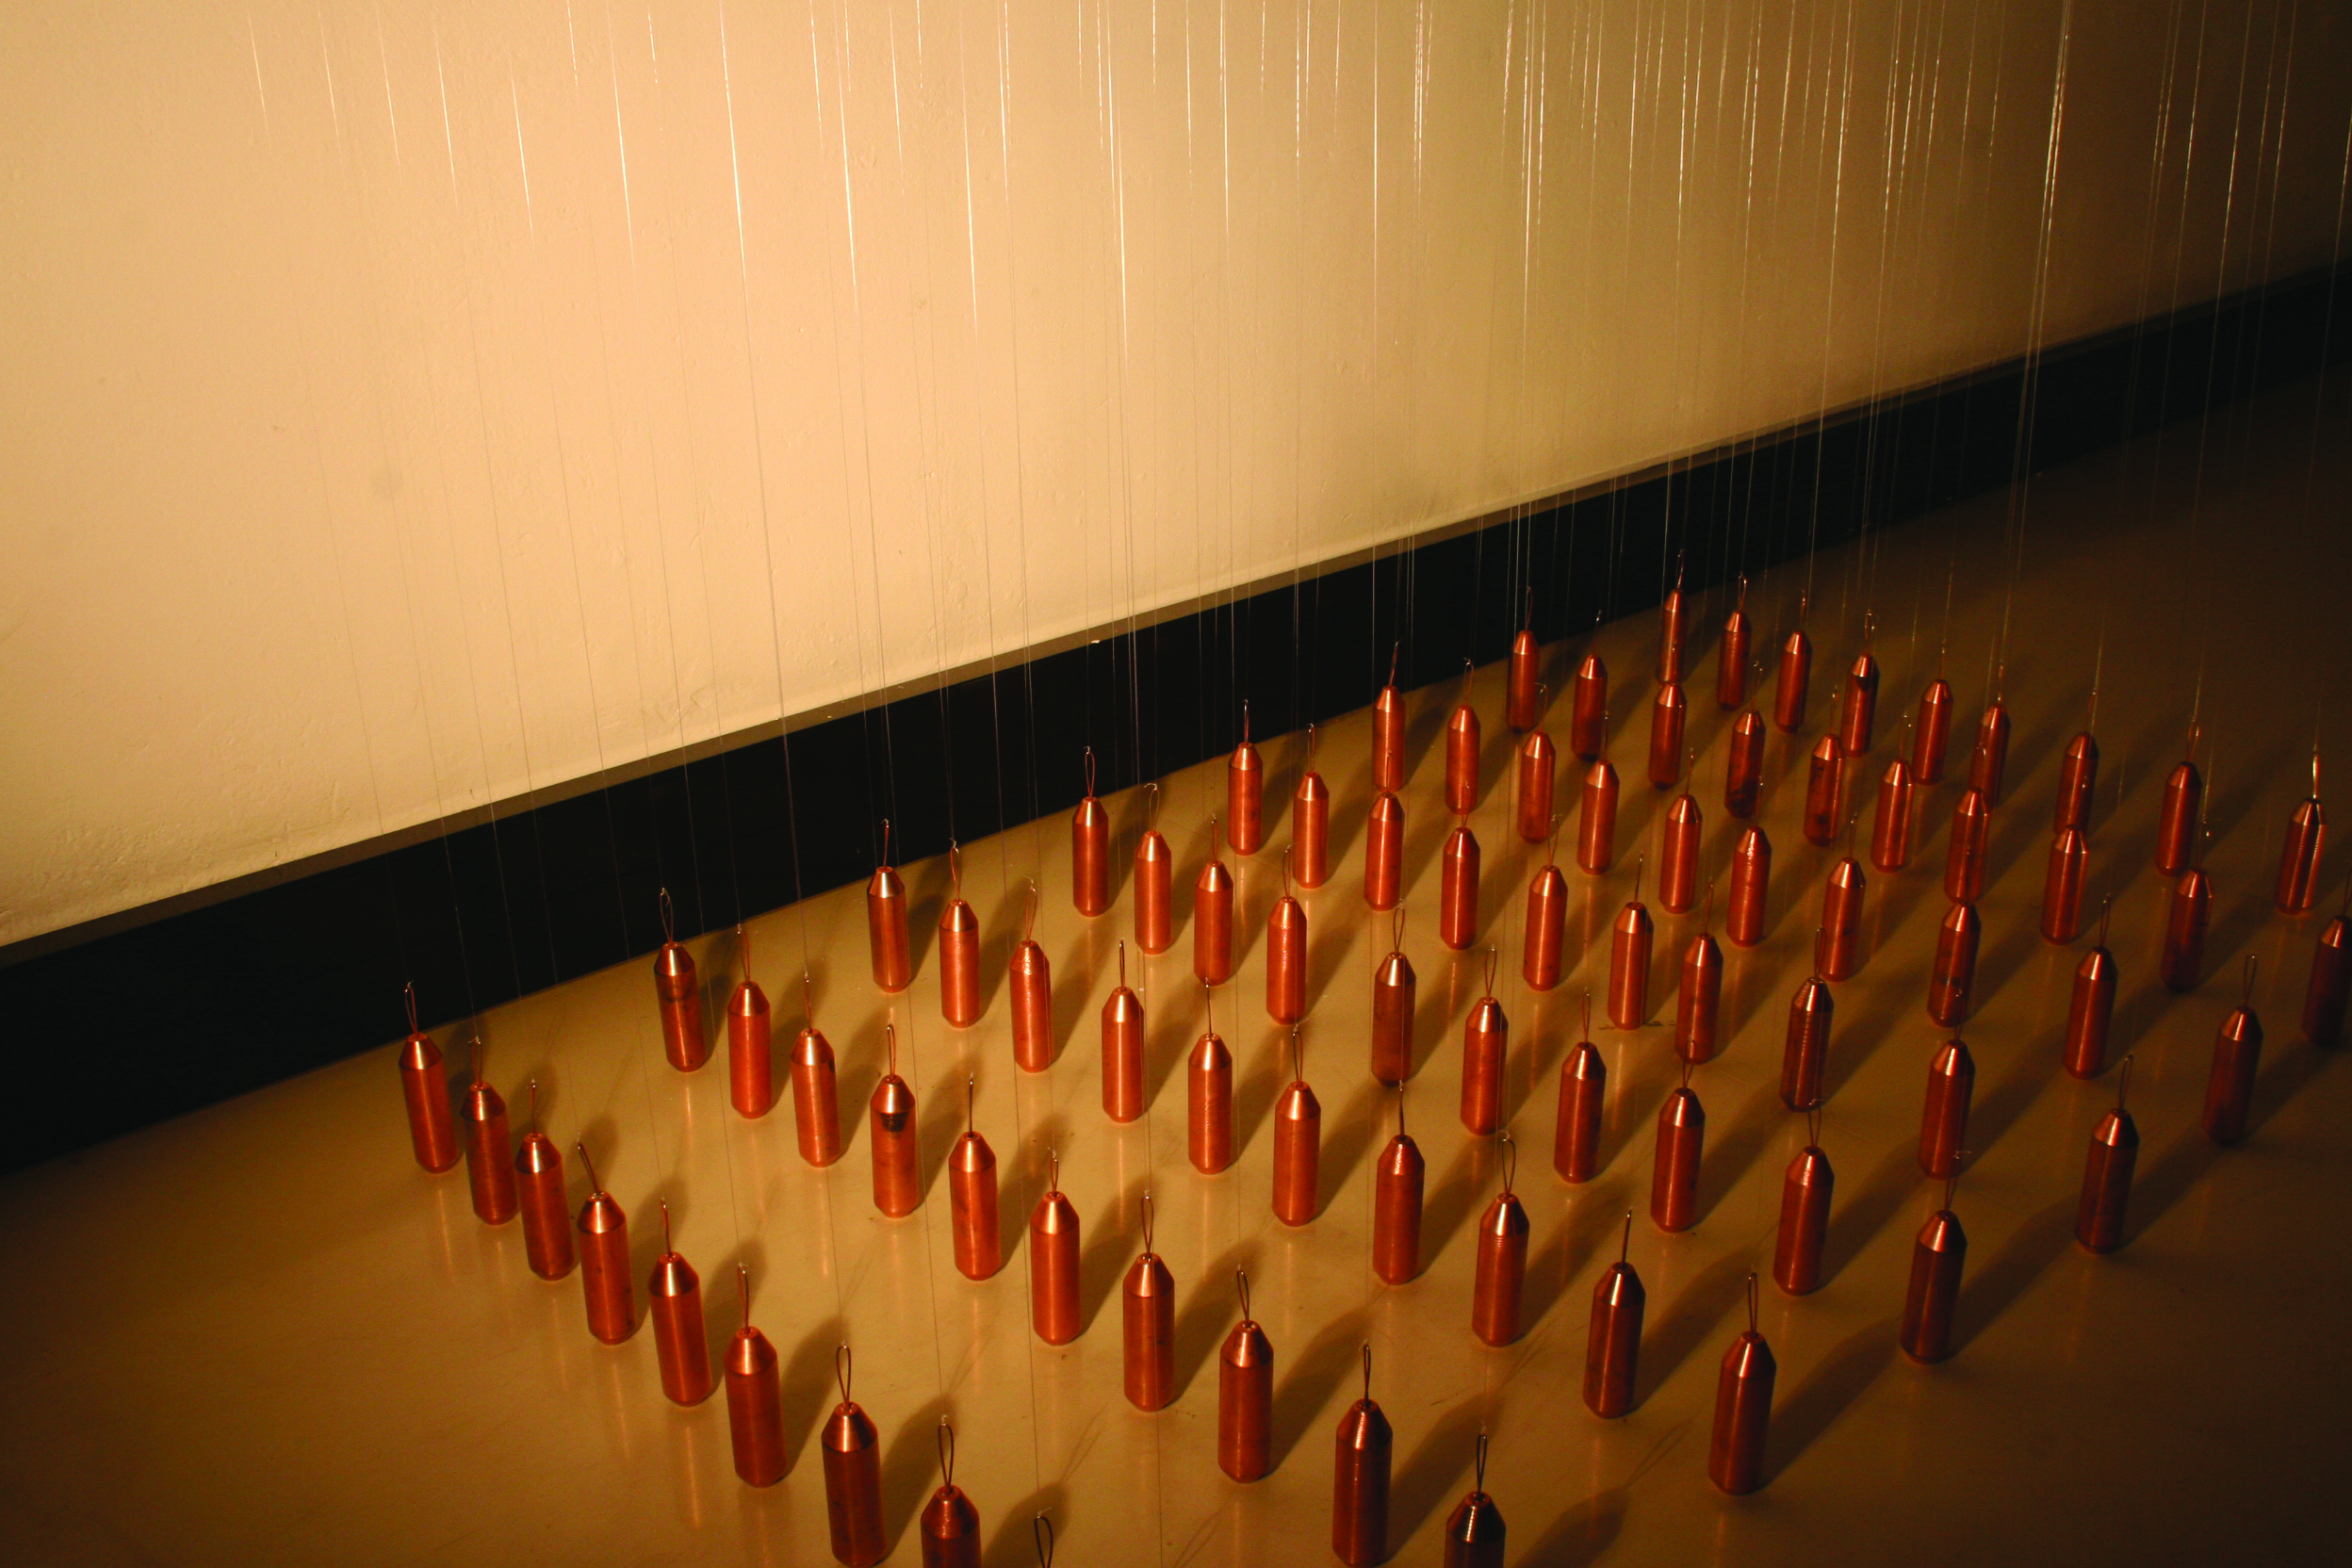 Bronwyn Lace_ Verticality, Height and Mass_ 2009_performance_installation (2) (1).jpg